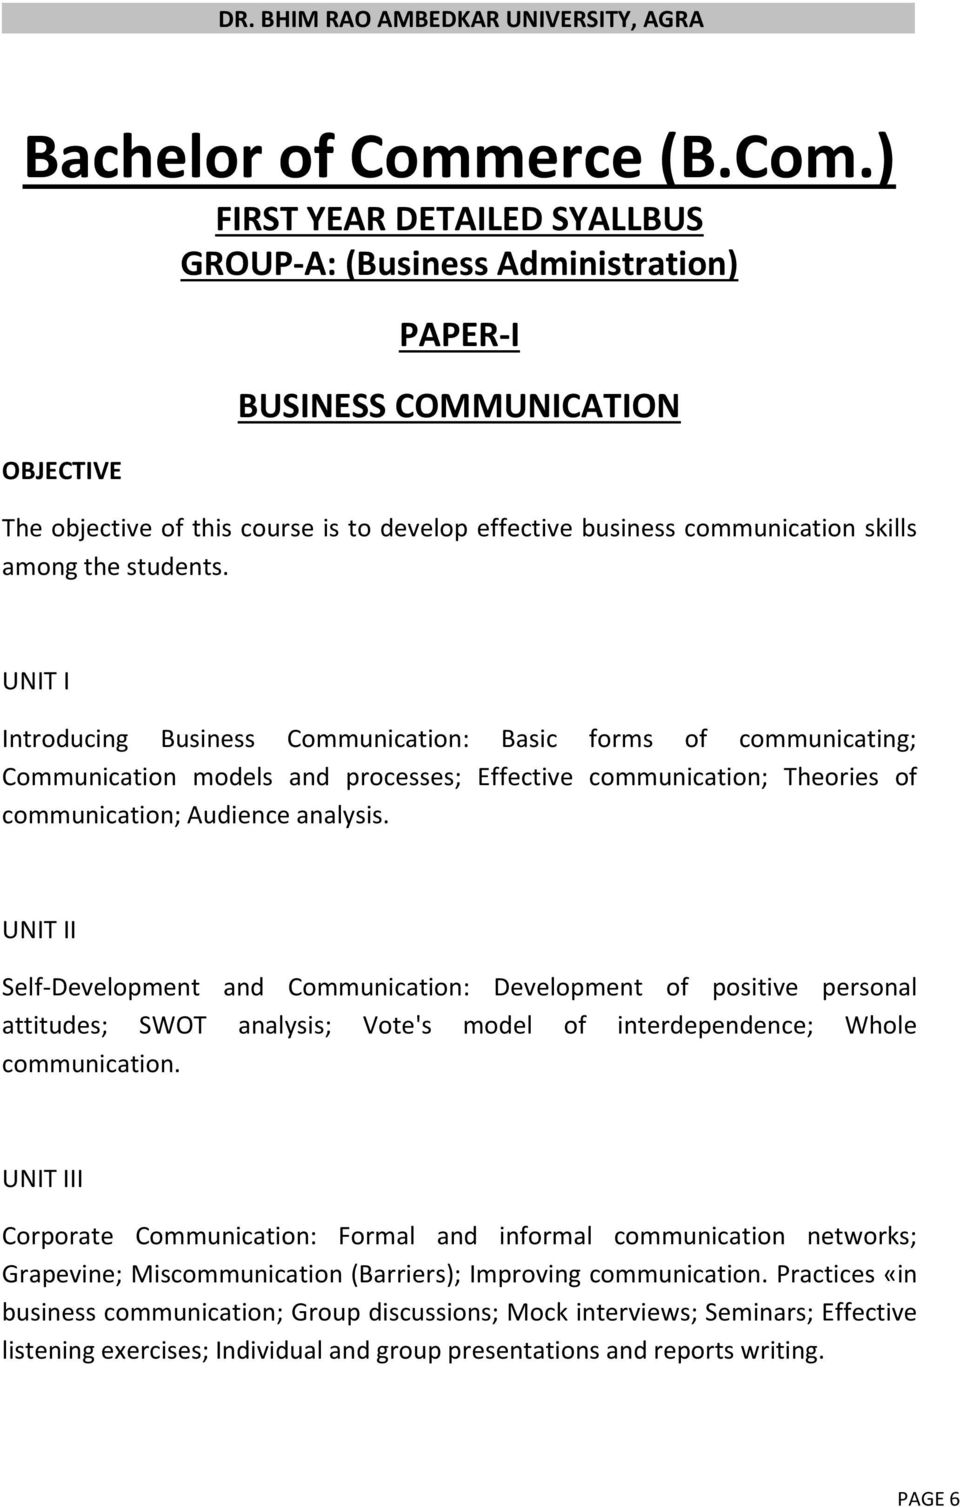 ) FIRST YEAR DETAILED SYALLBUS GROUP-A: (Business Administration) OBJECTIVE PAPER-I BUSINESS COMMUNICATION The objective of this course is to develop effective business communication skills among the